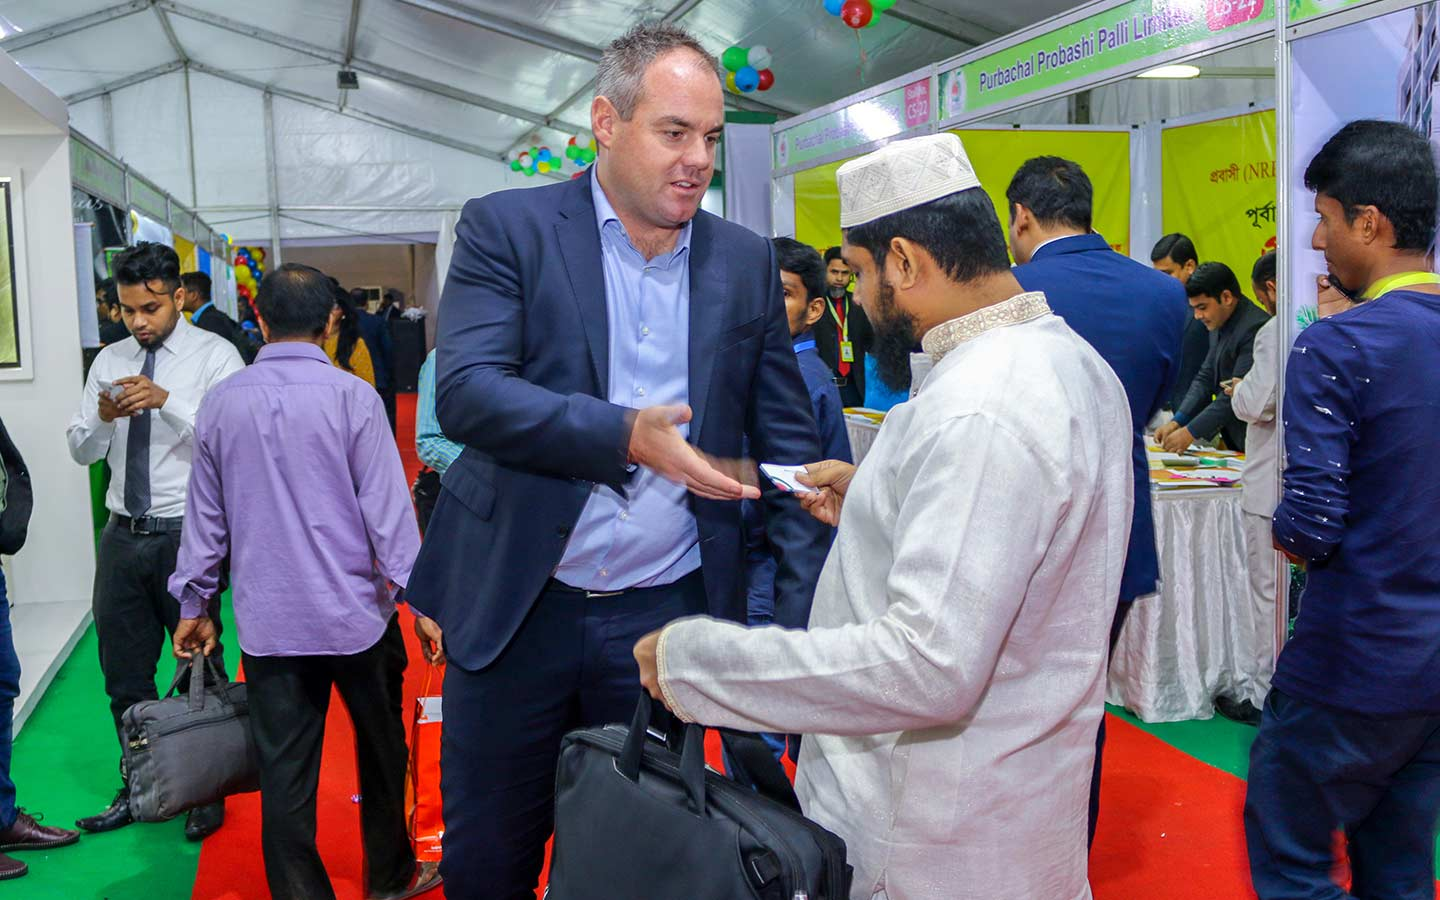 CEO of Bproperty conversing with visitor